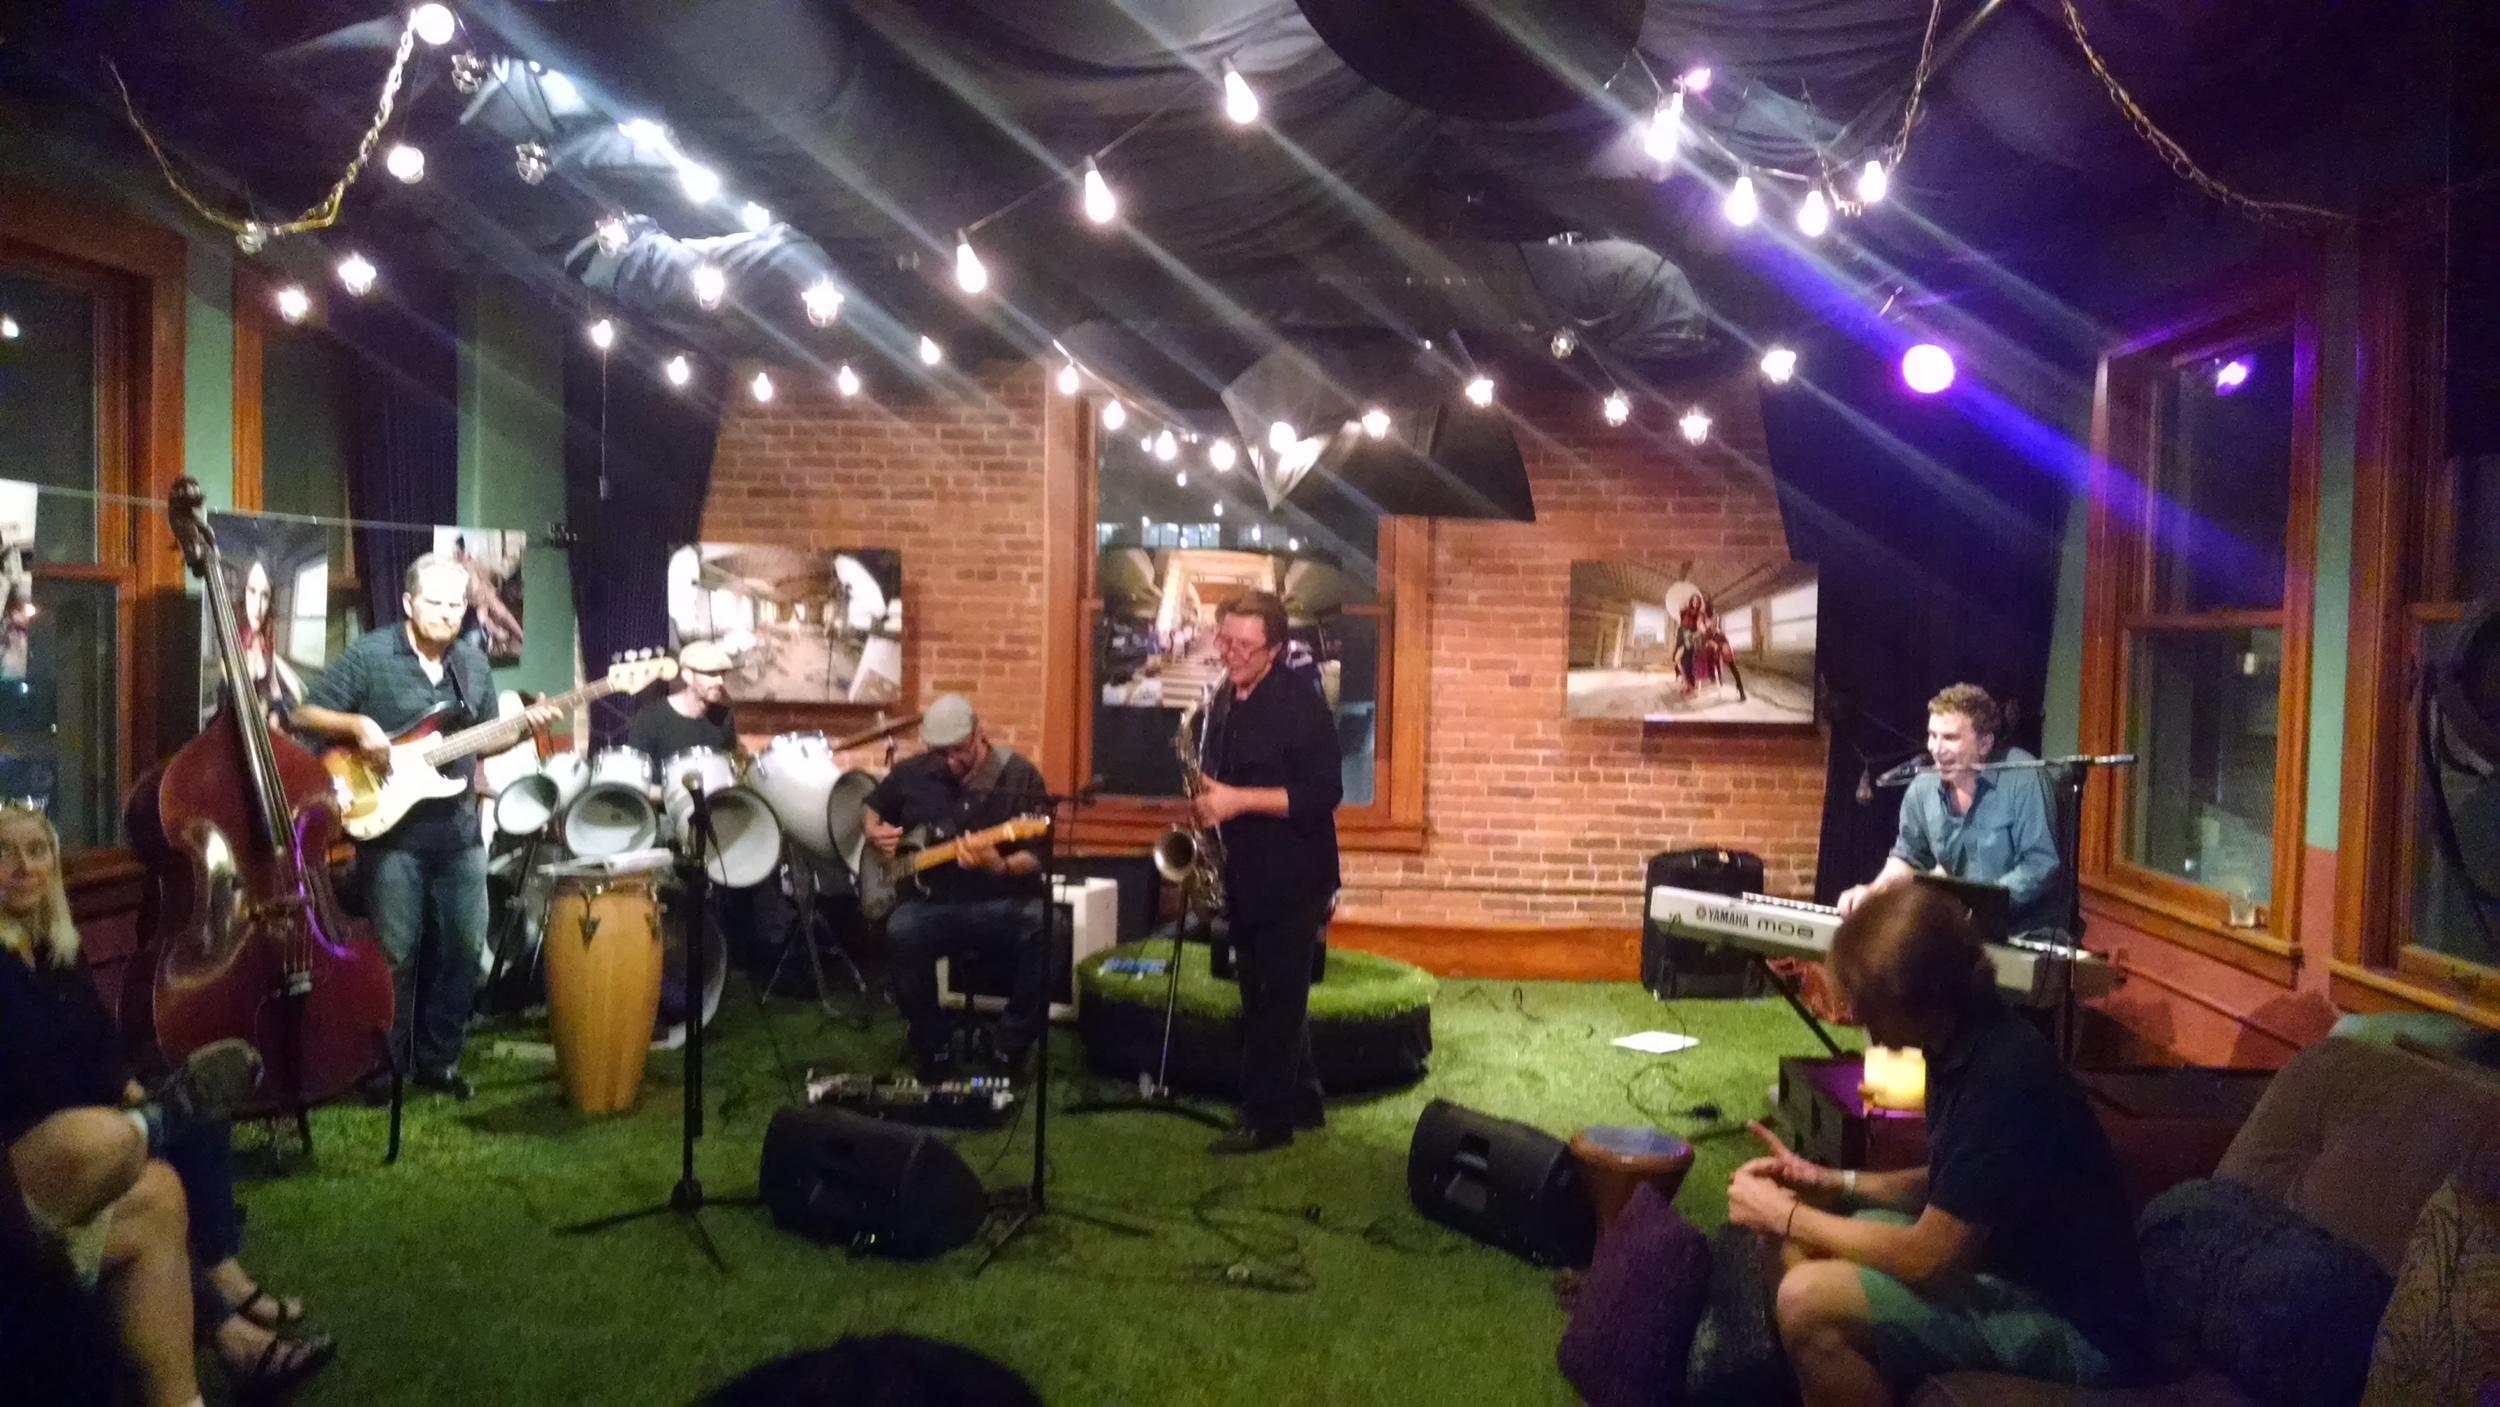 Scott Page and his awesome band!